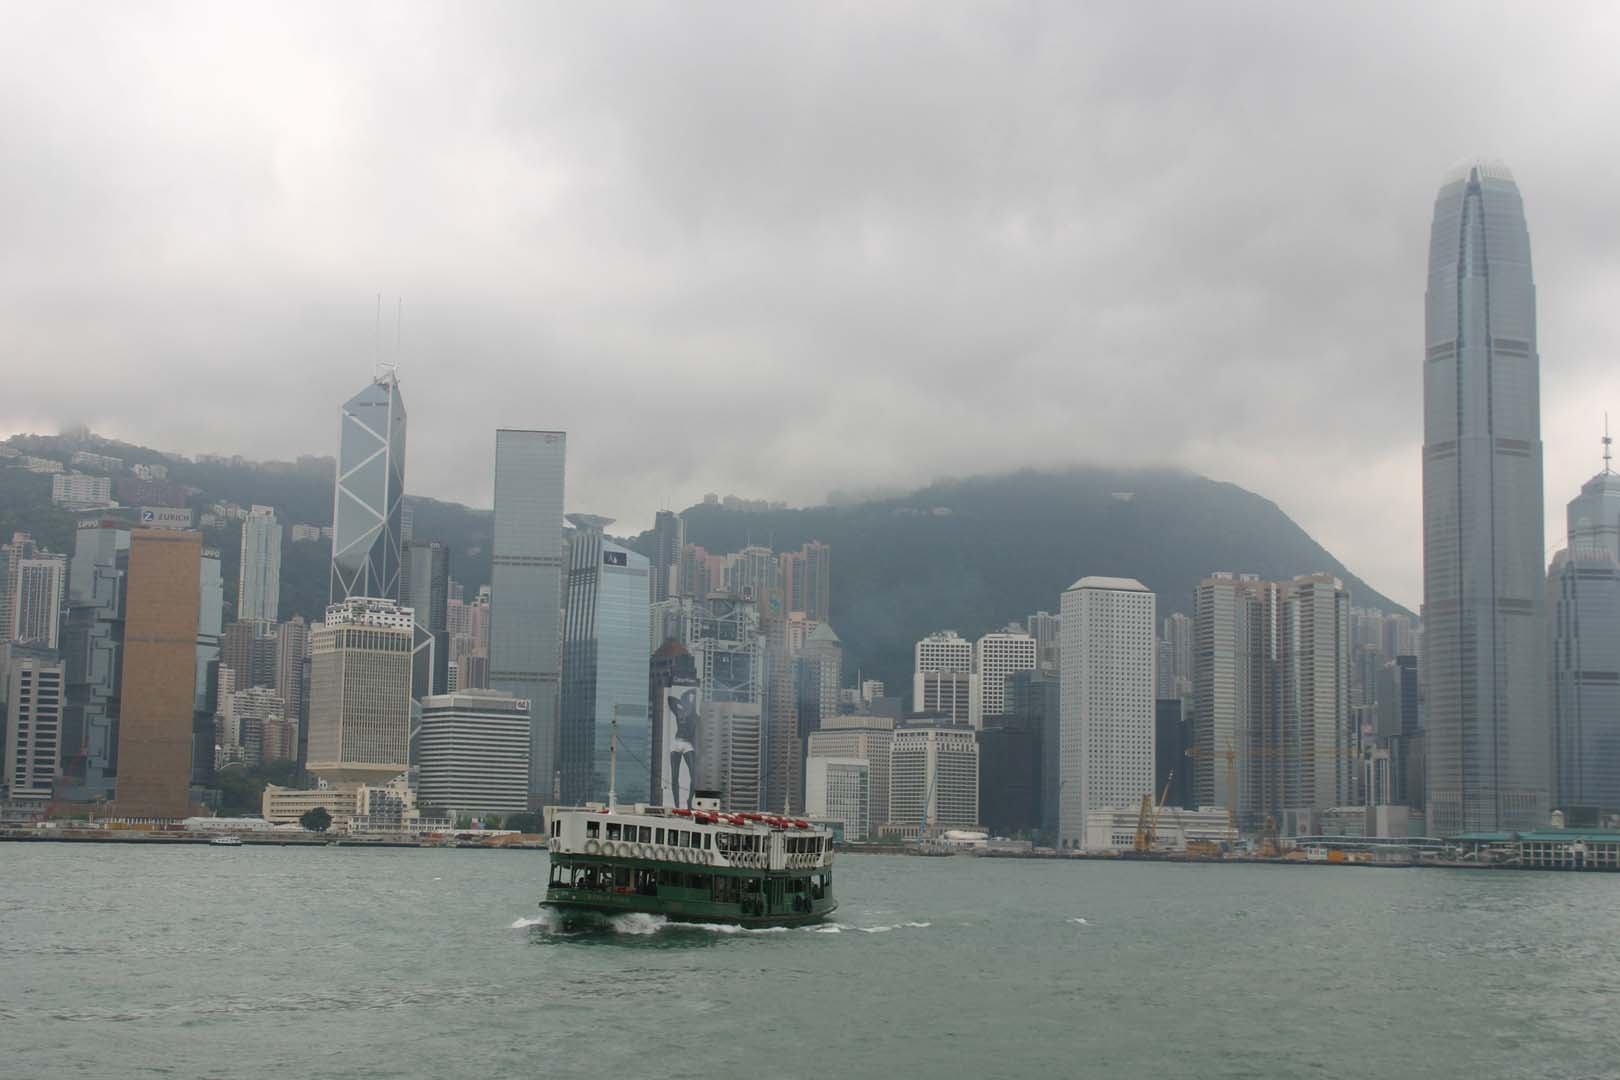 Hong Kong Star Ferry in front of Victoria Peak in Victoria Harbour